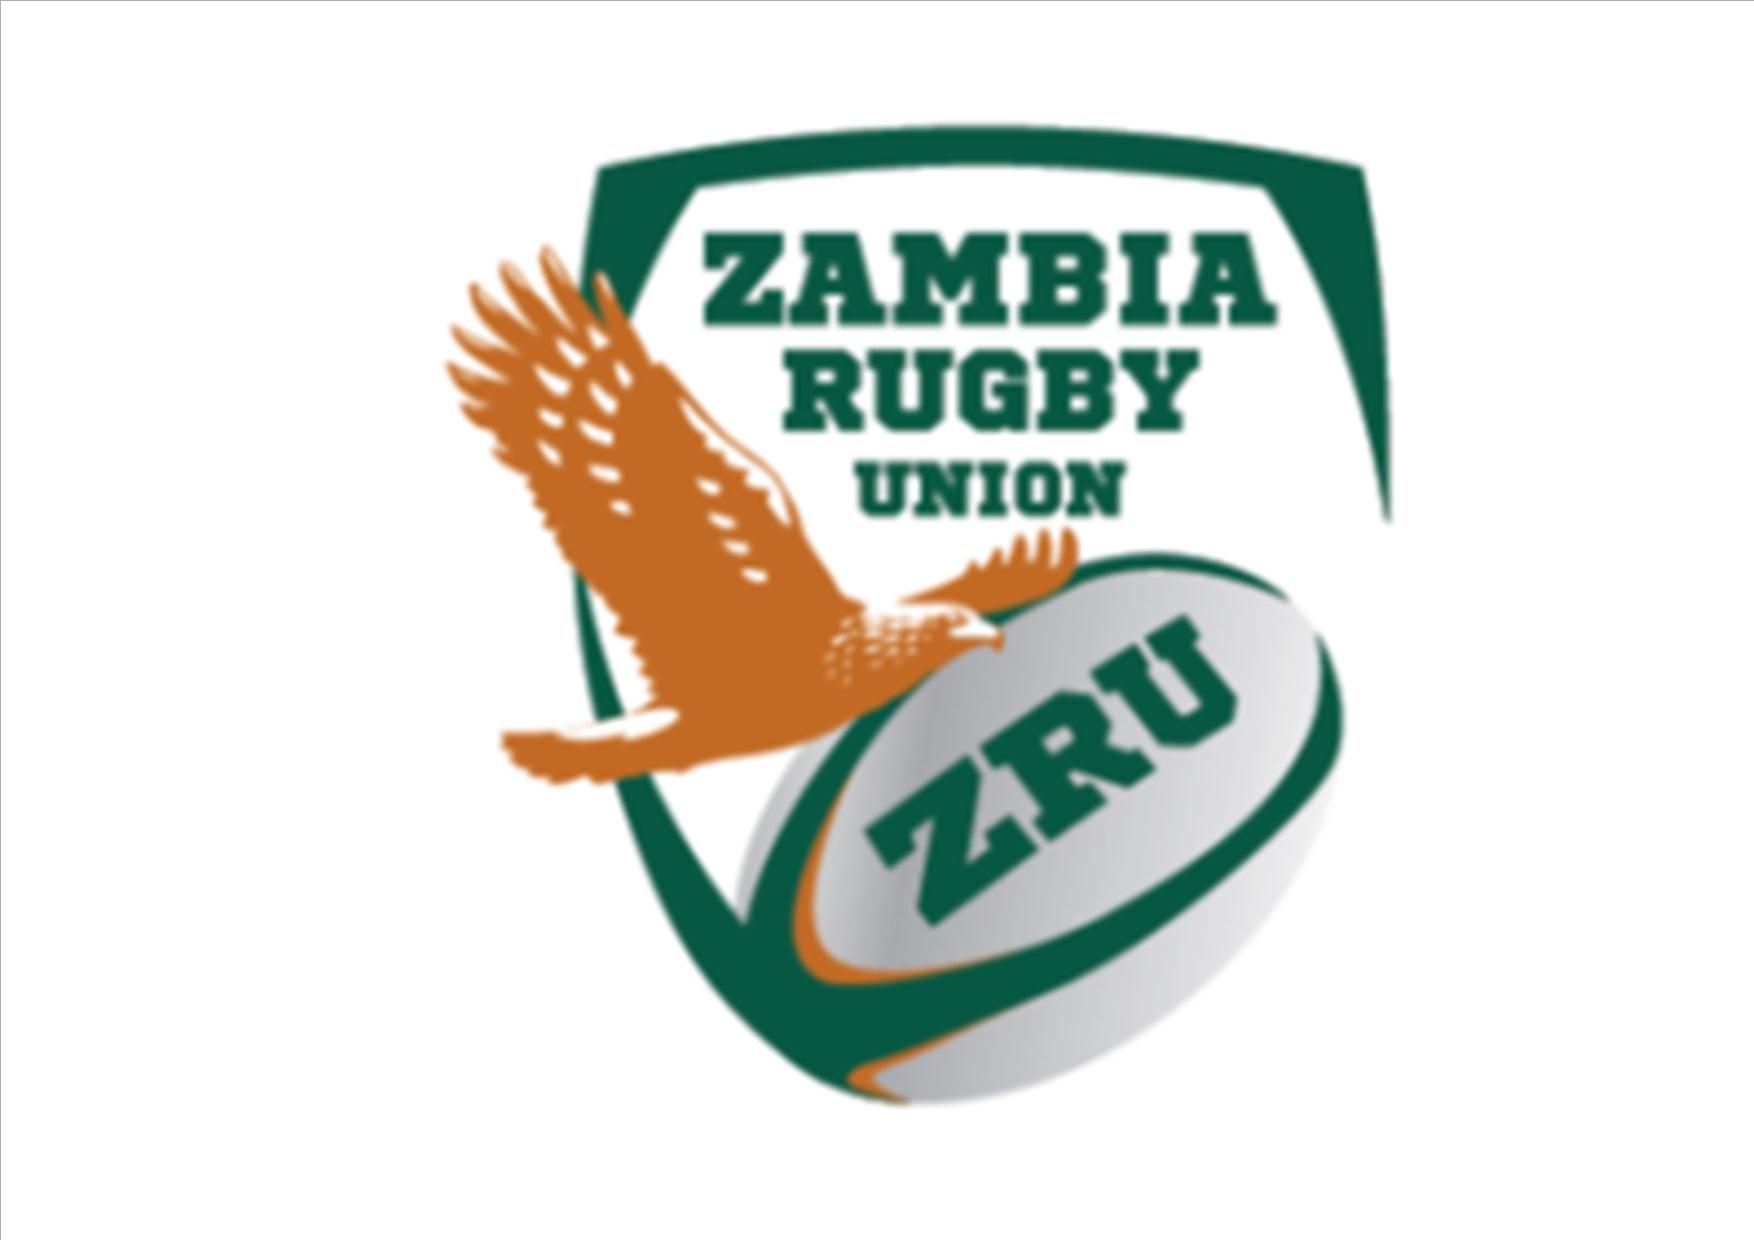 Zambia Rugby Union